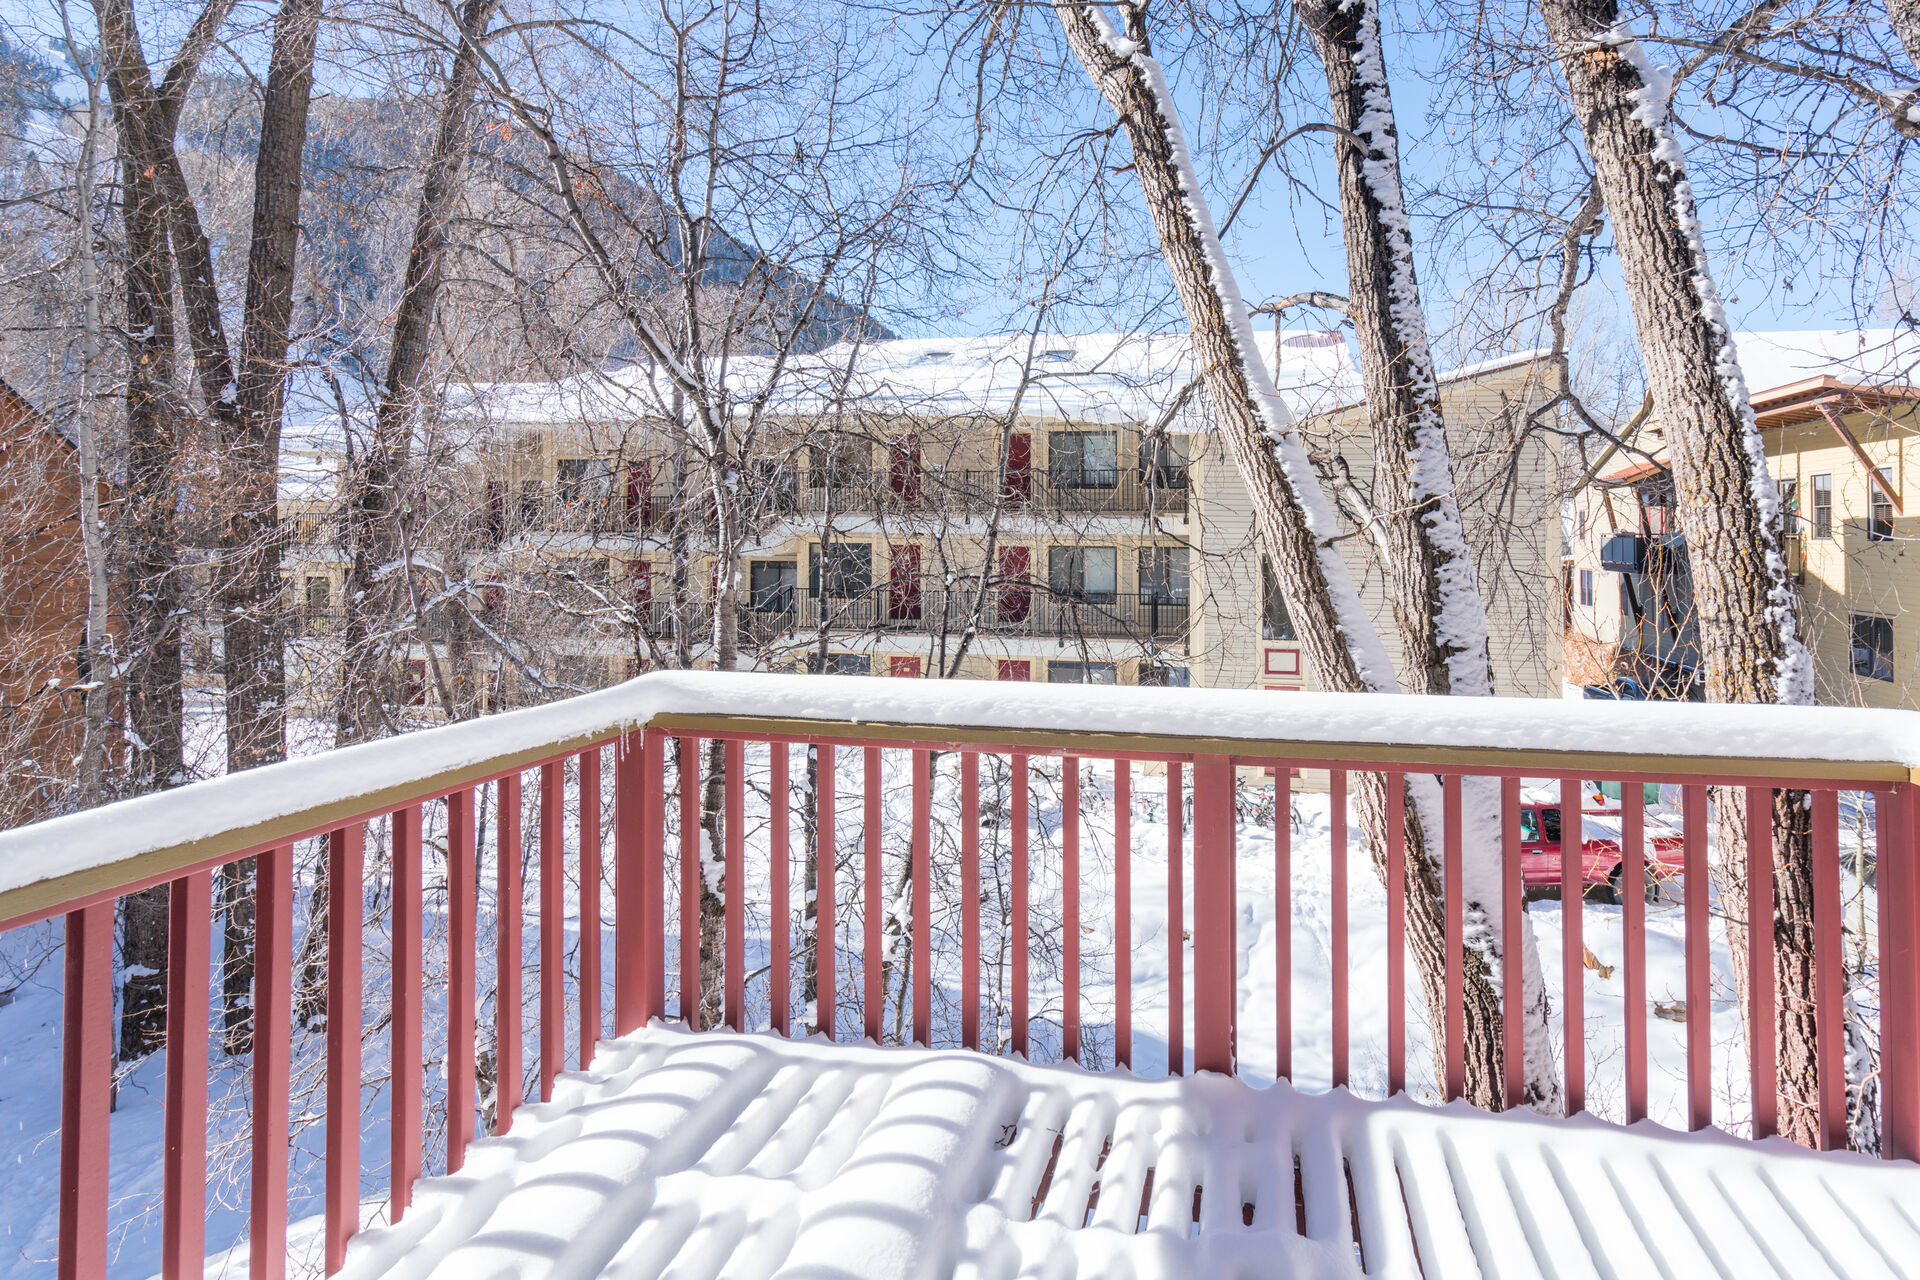 View from the Deck of our Telluride Condo Rental